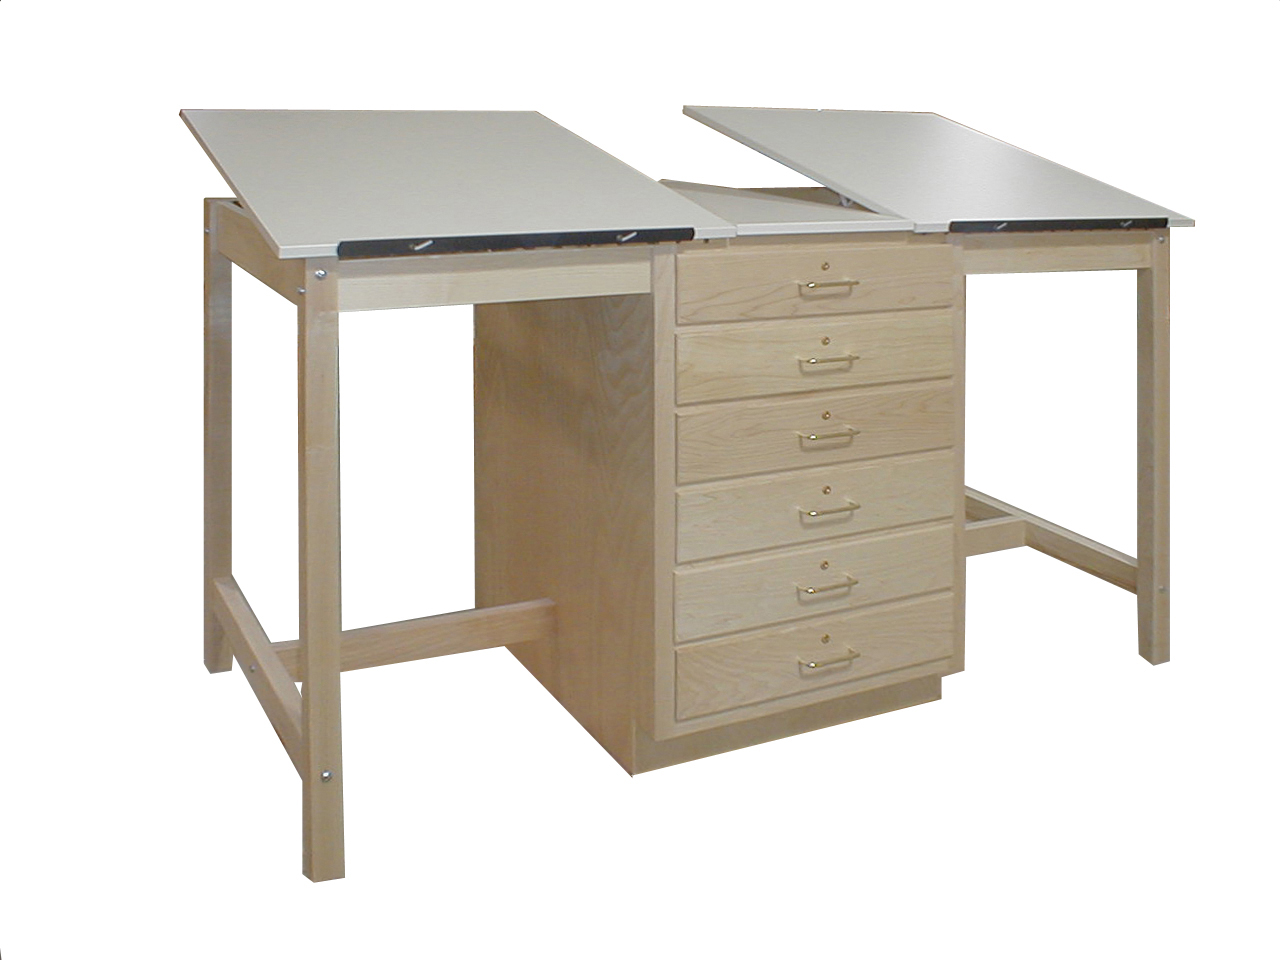 Beau HANN Dual Station Drawing Table, Large 6 Drawer Storage Cabinet. Loading  Zoom